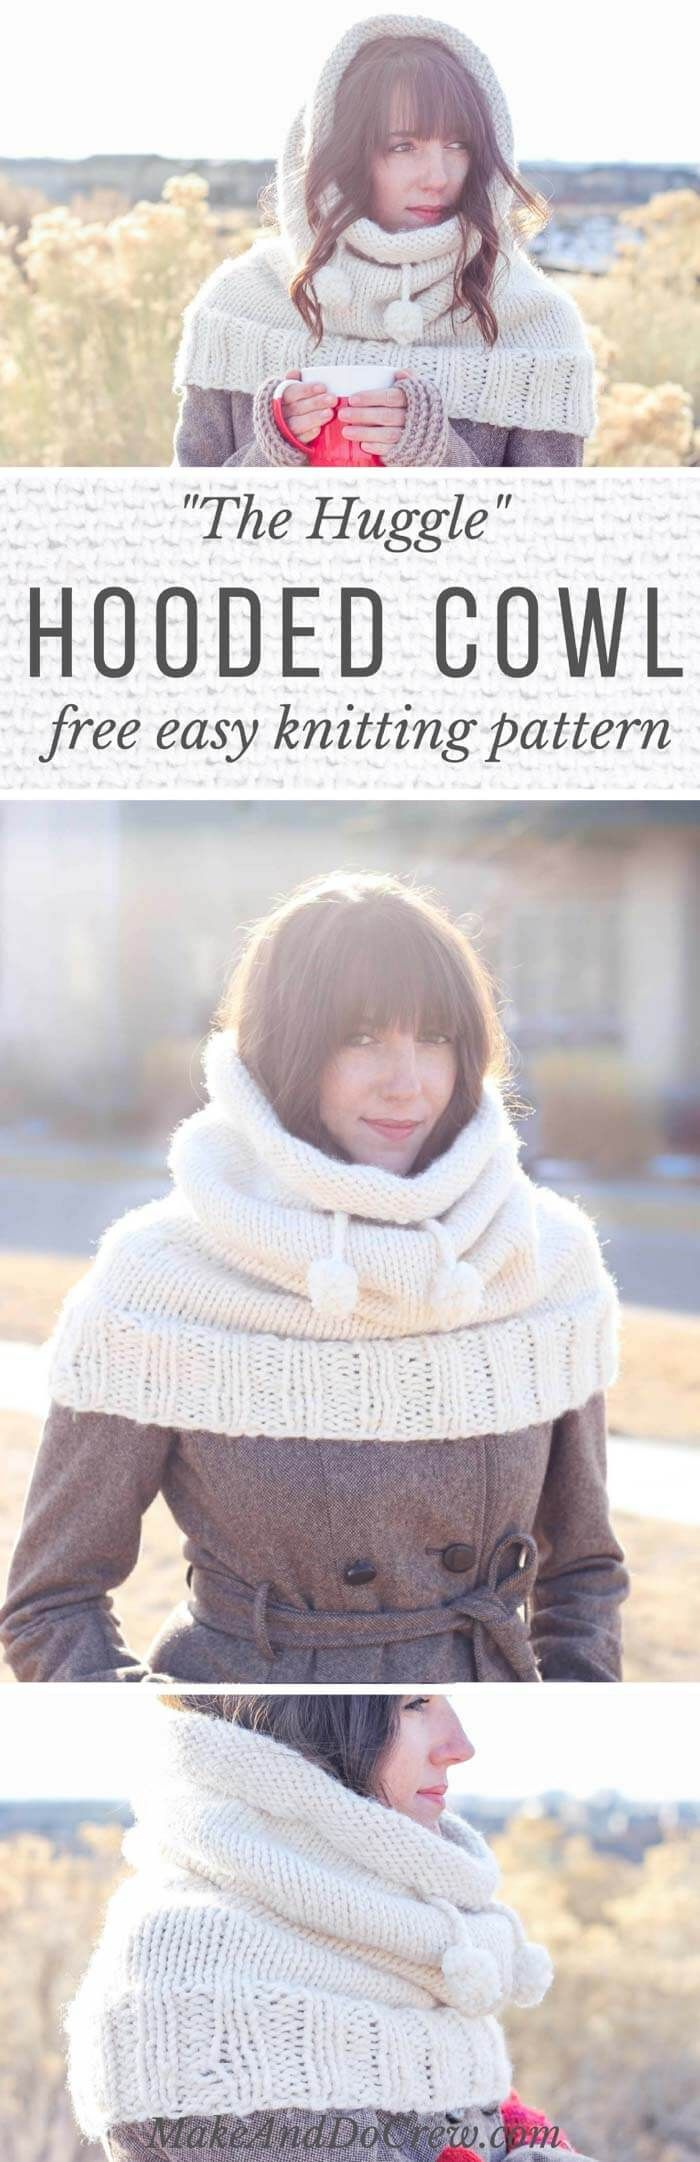 The Huggle\' Hooded Cowl – Free Knitting Pattern | Tejido, Gorros y ...